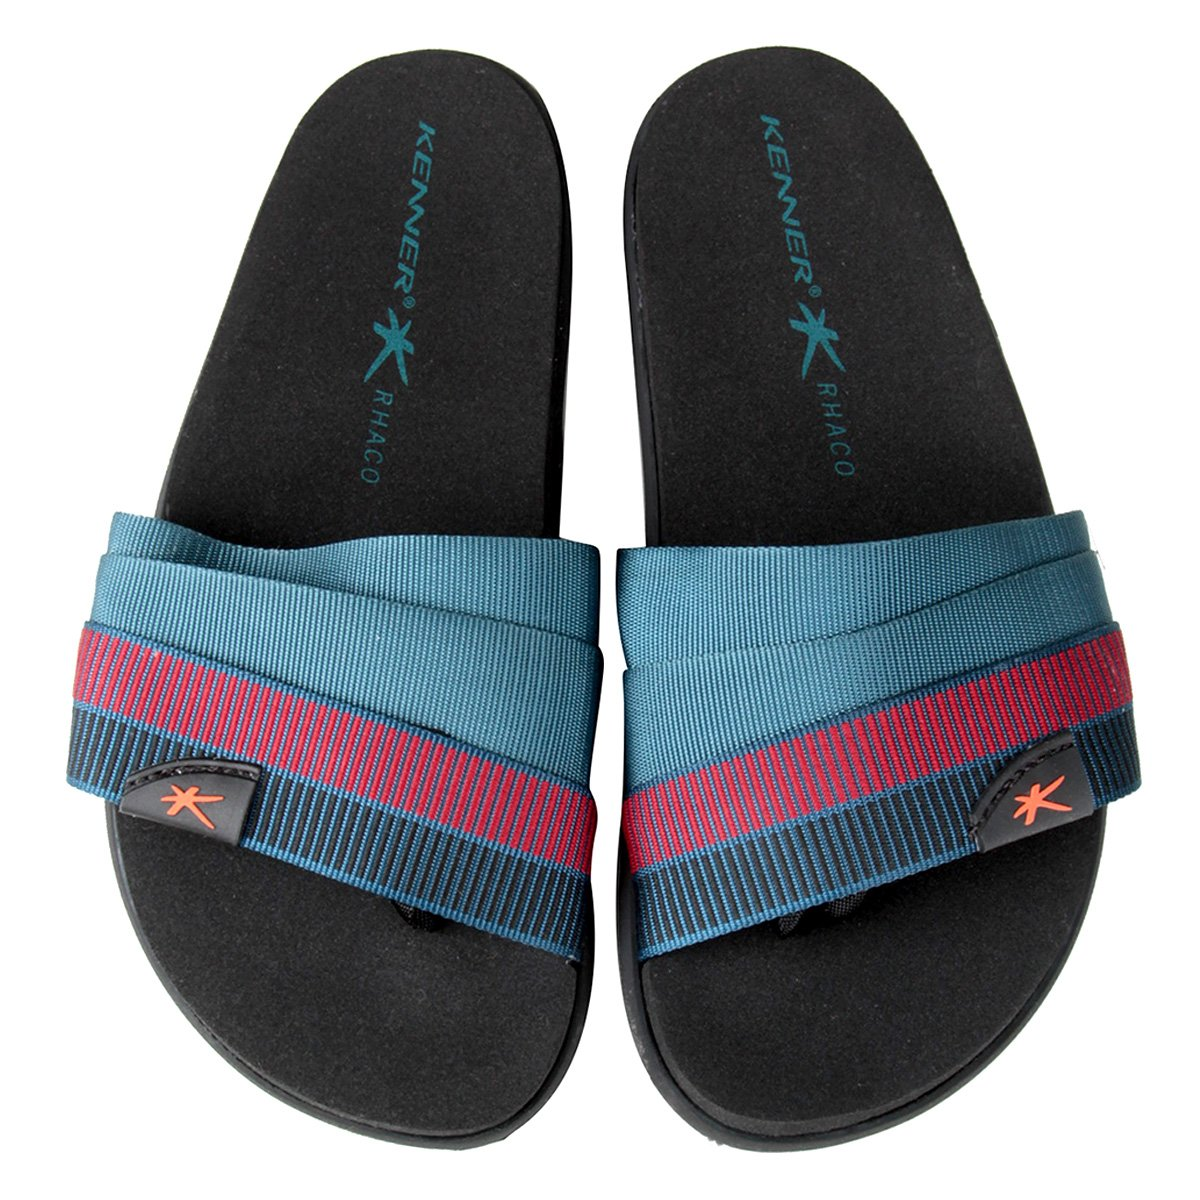 5913b8c3b7 Chinelo Kenner Rhaco S- On Hold Double Drop Masculino - Preto - Compre  Agora